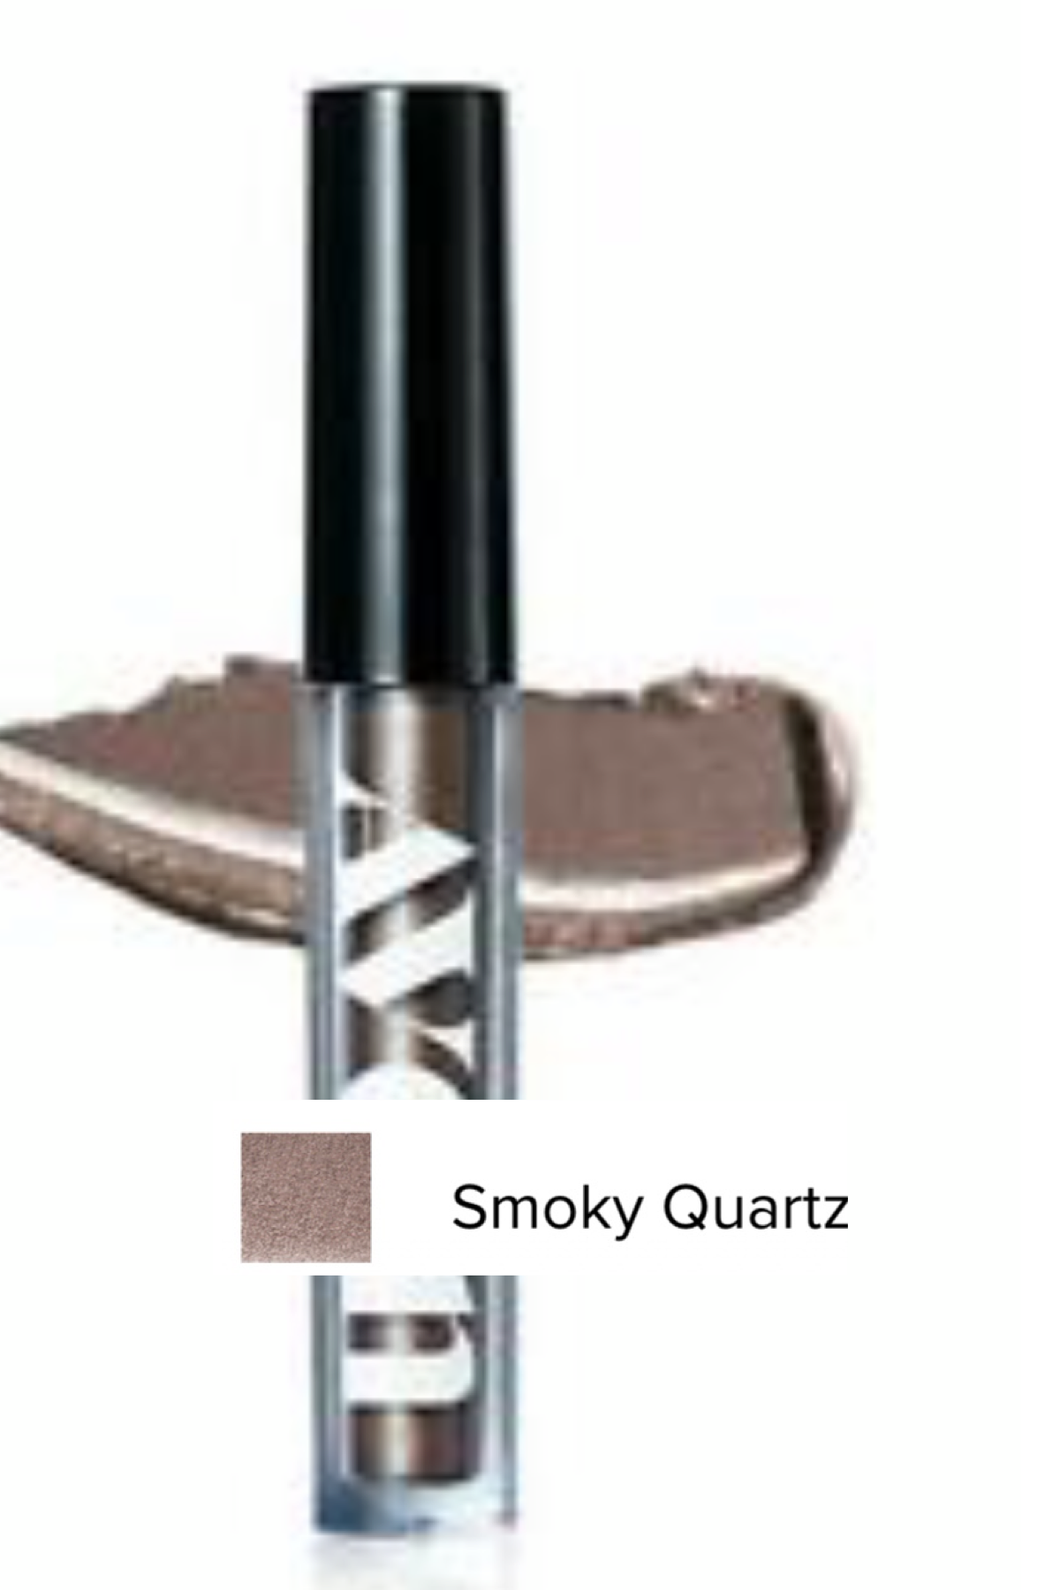 Smoky Quartz Glimmershadow Liquid Eyeshadow